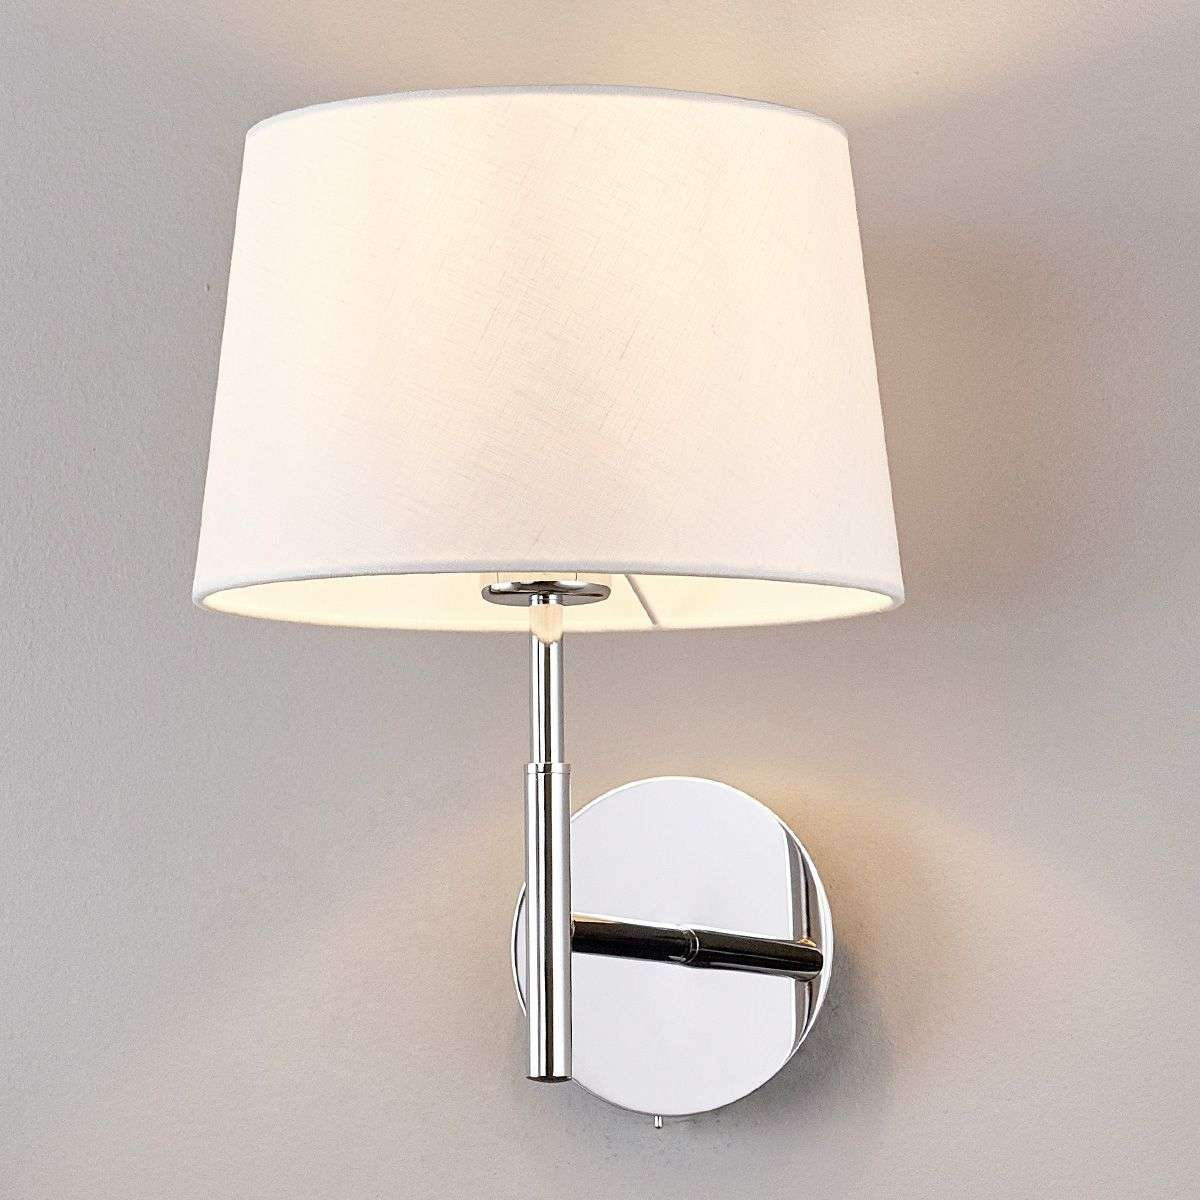 Pretty wall lamp dorothea with white fabric shade lights pretty wall lamp dorothea with white fabric shade 9976014 31 mozeypictures Gallery